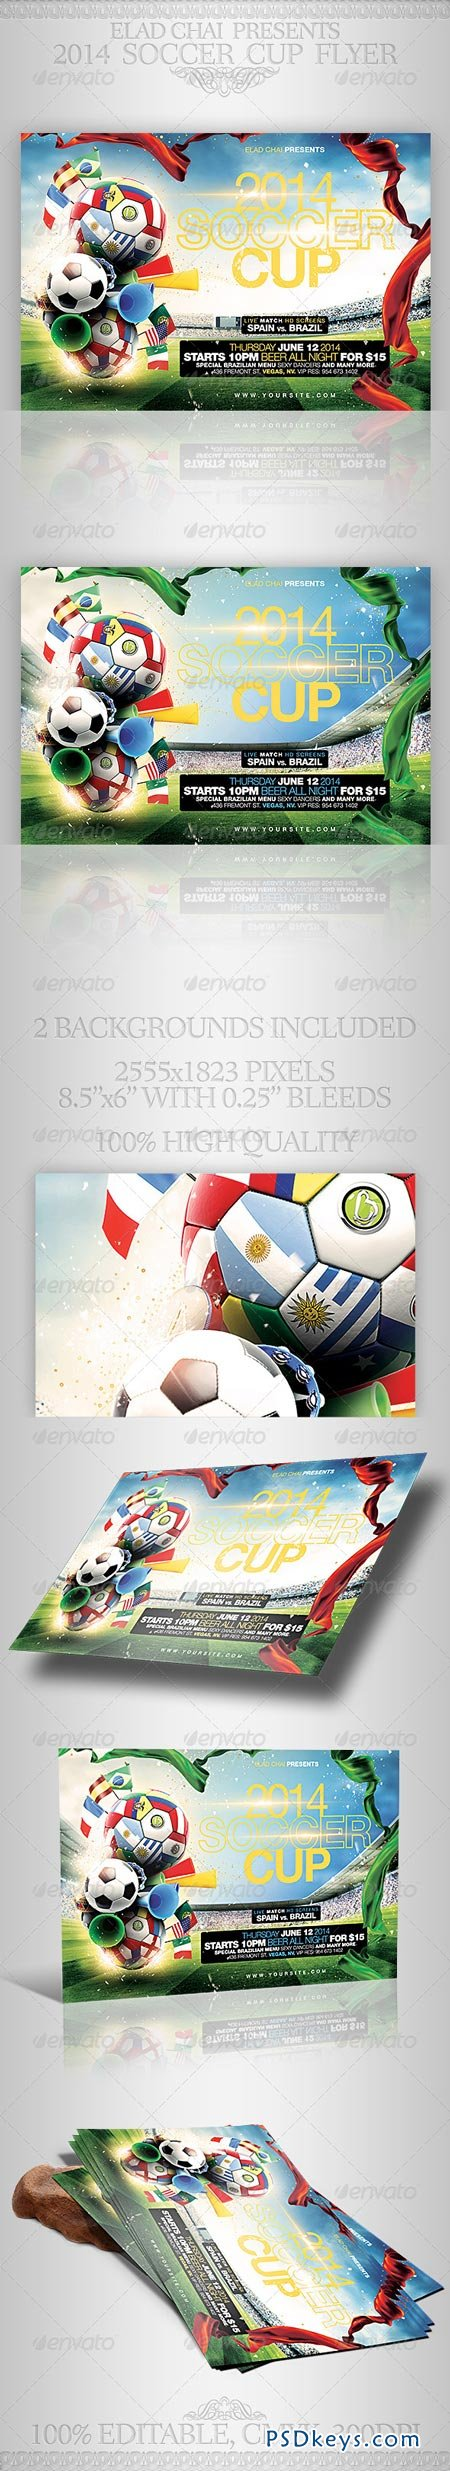 Brazil 2014 Soccer Football Cup Flyer Template 7092228